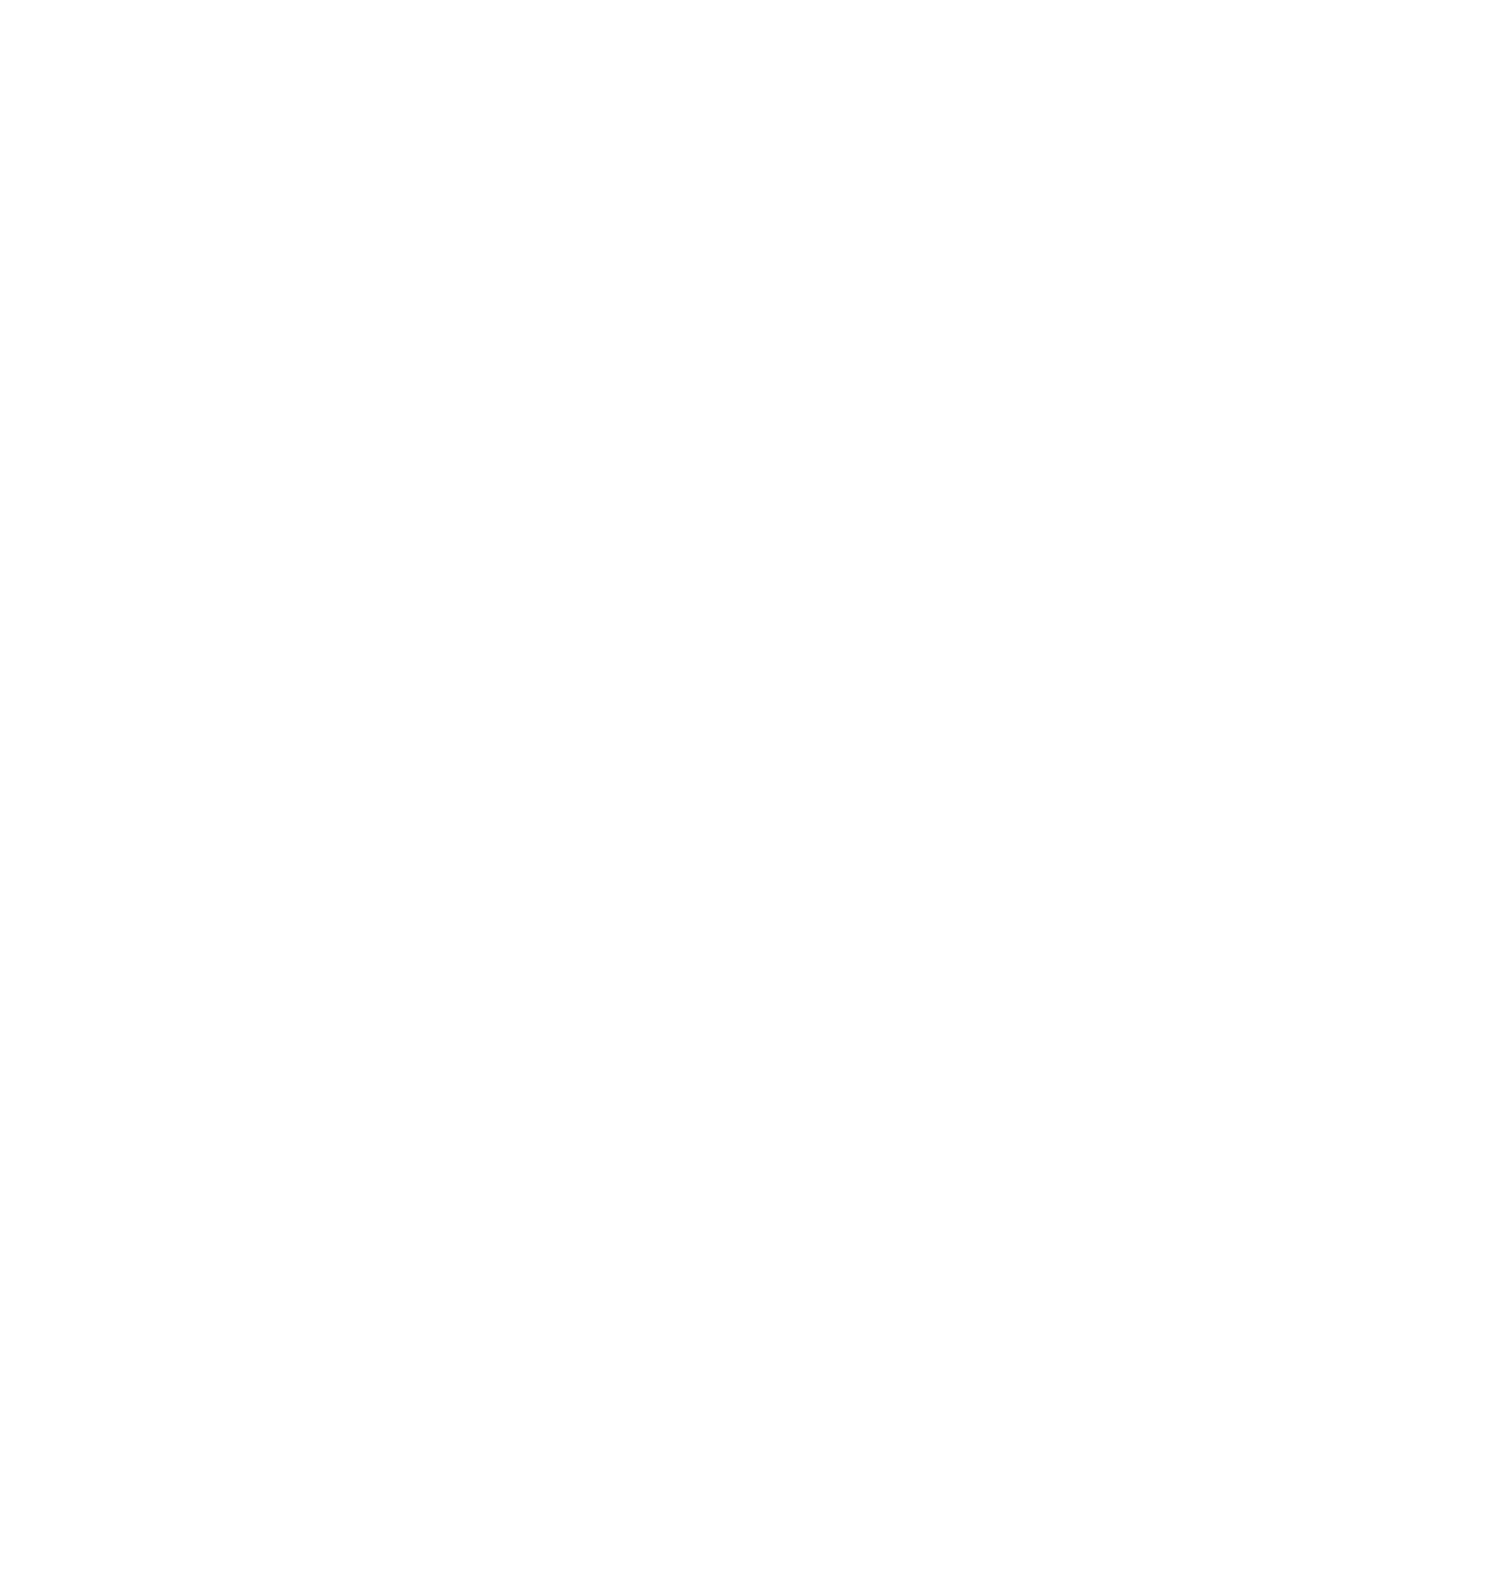 Michael Christian Durrant